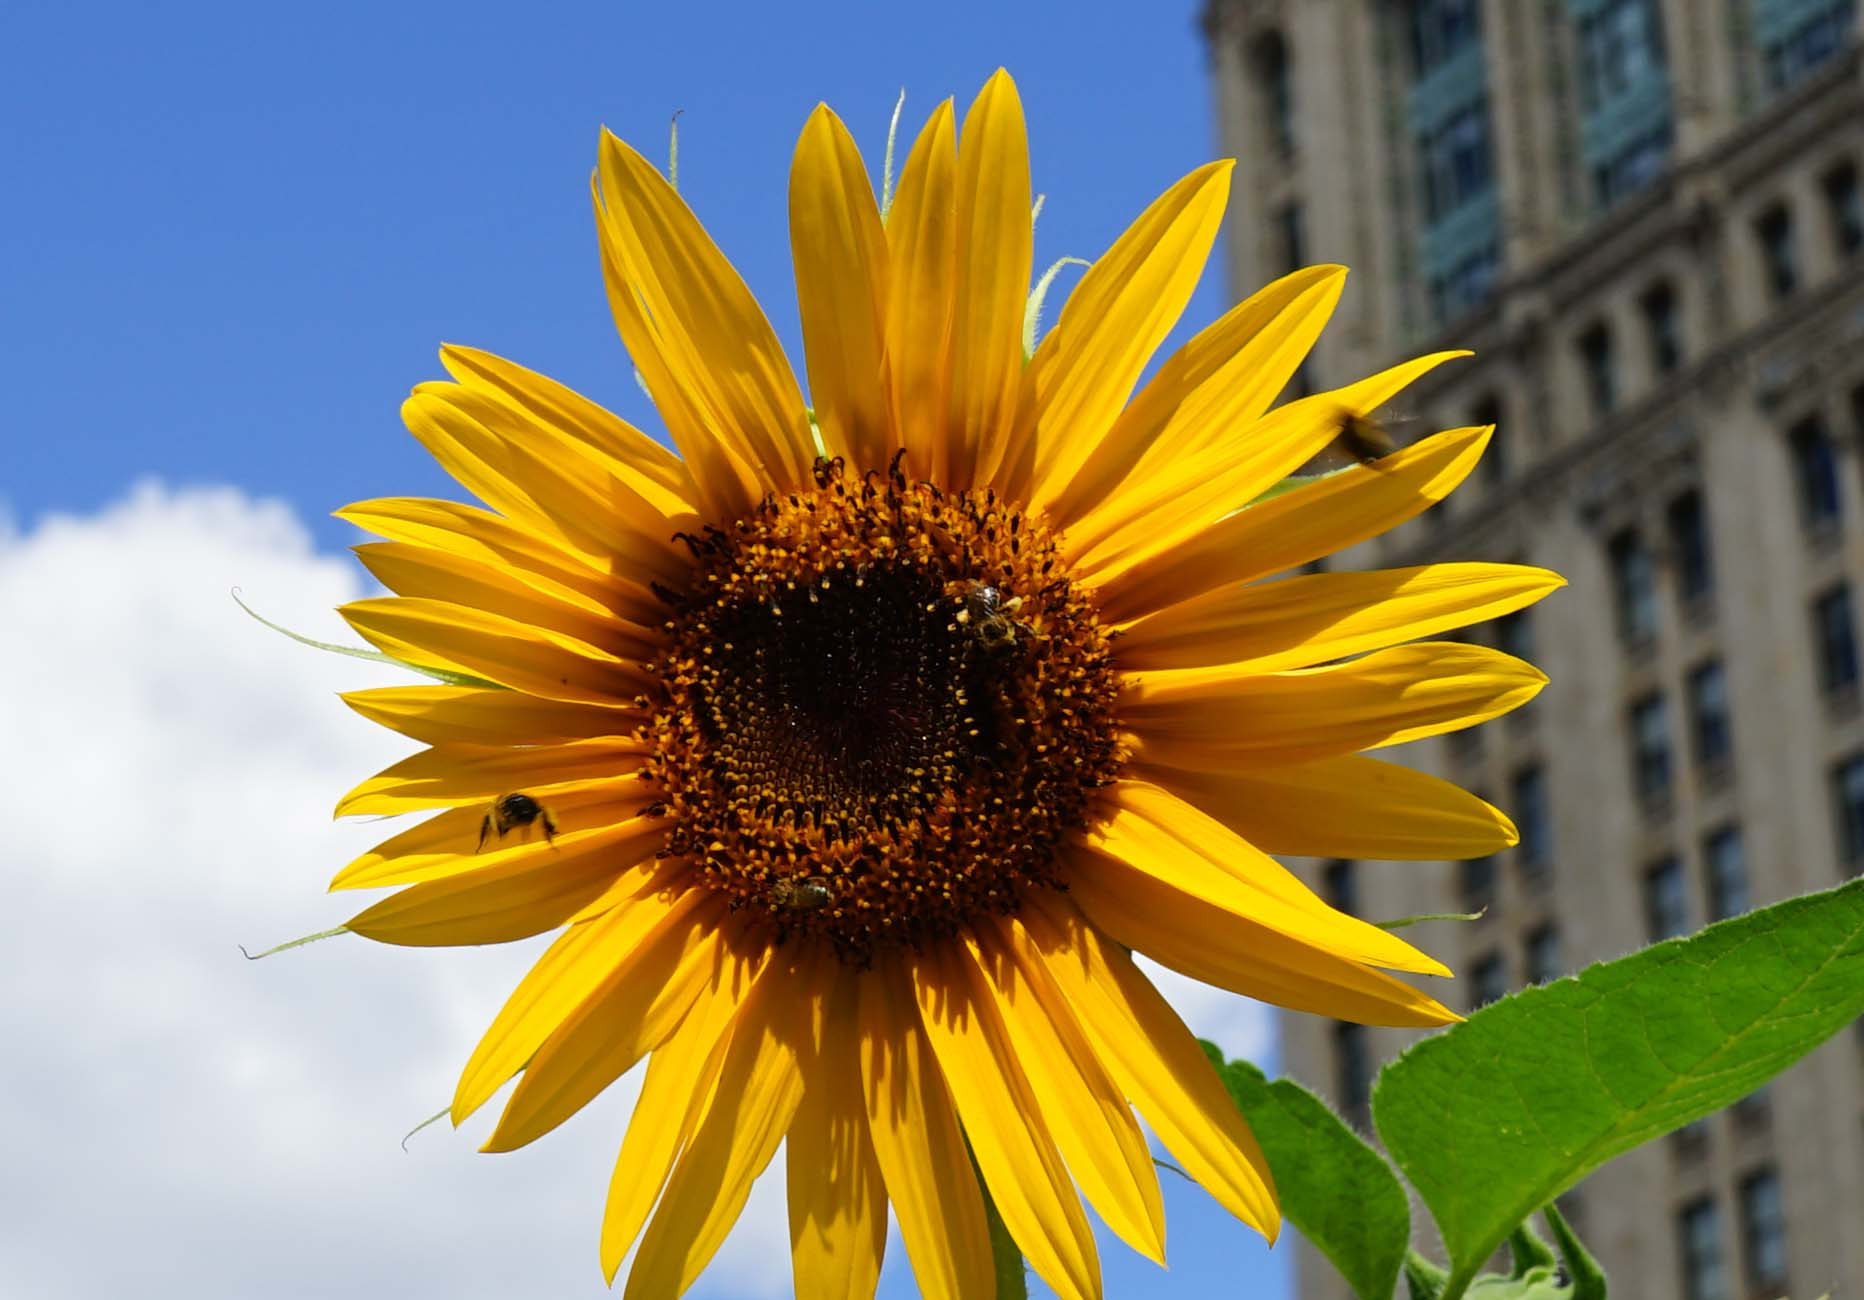 bees on sunflower A 8-13-2015